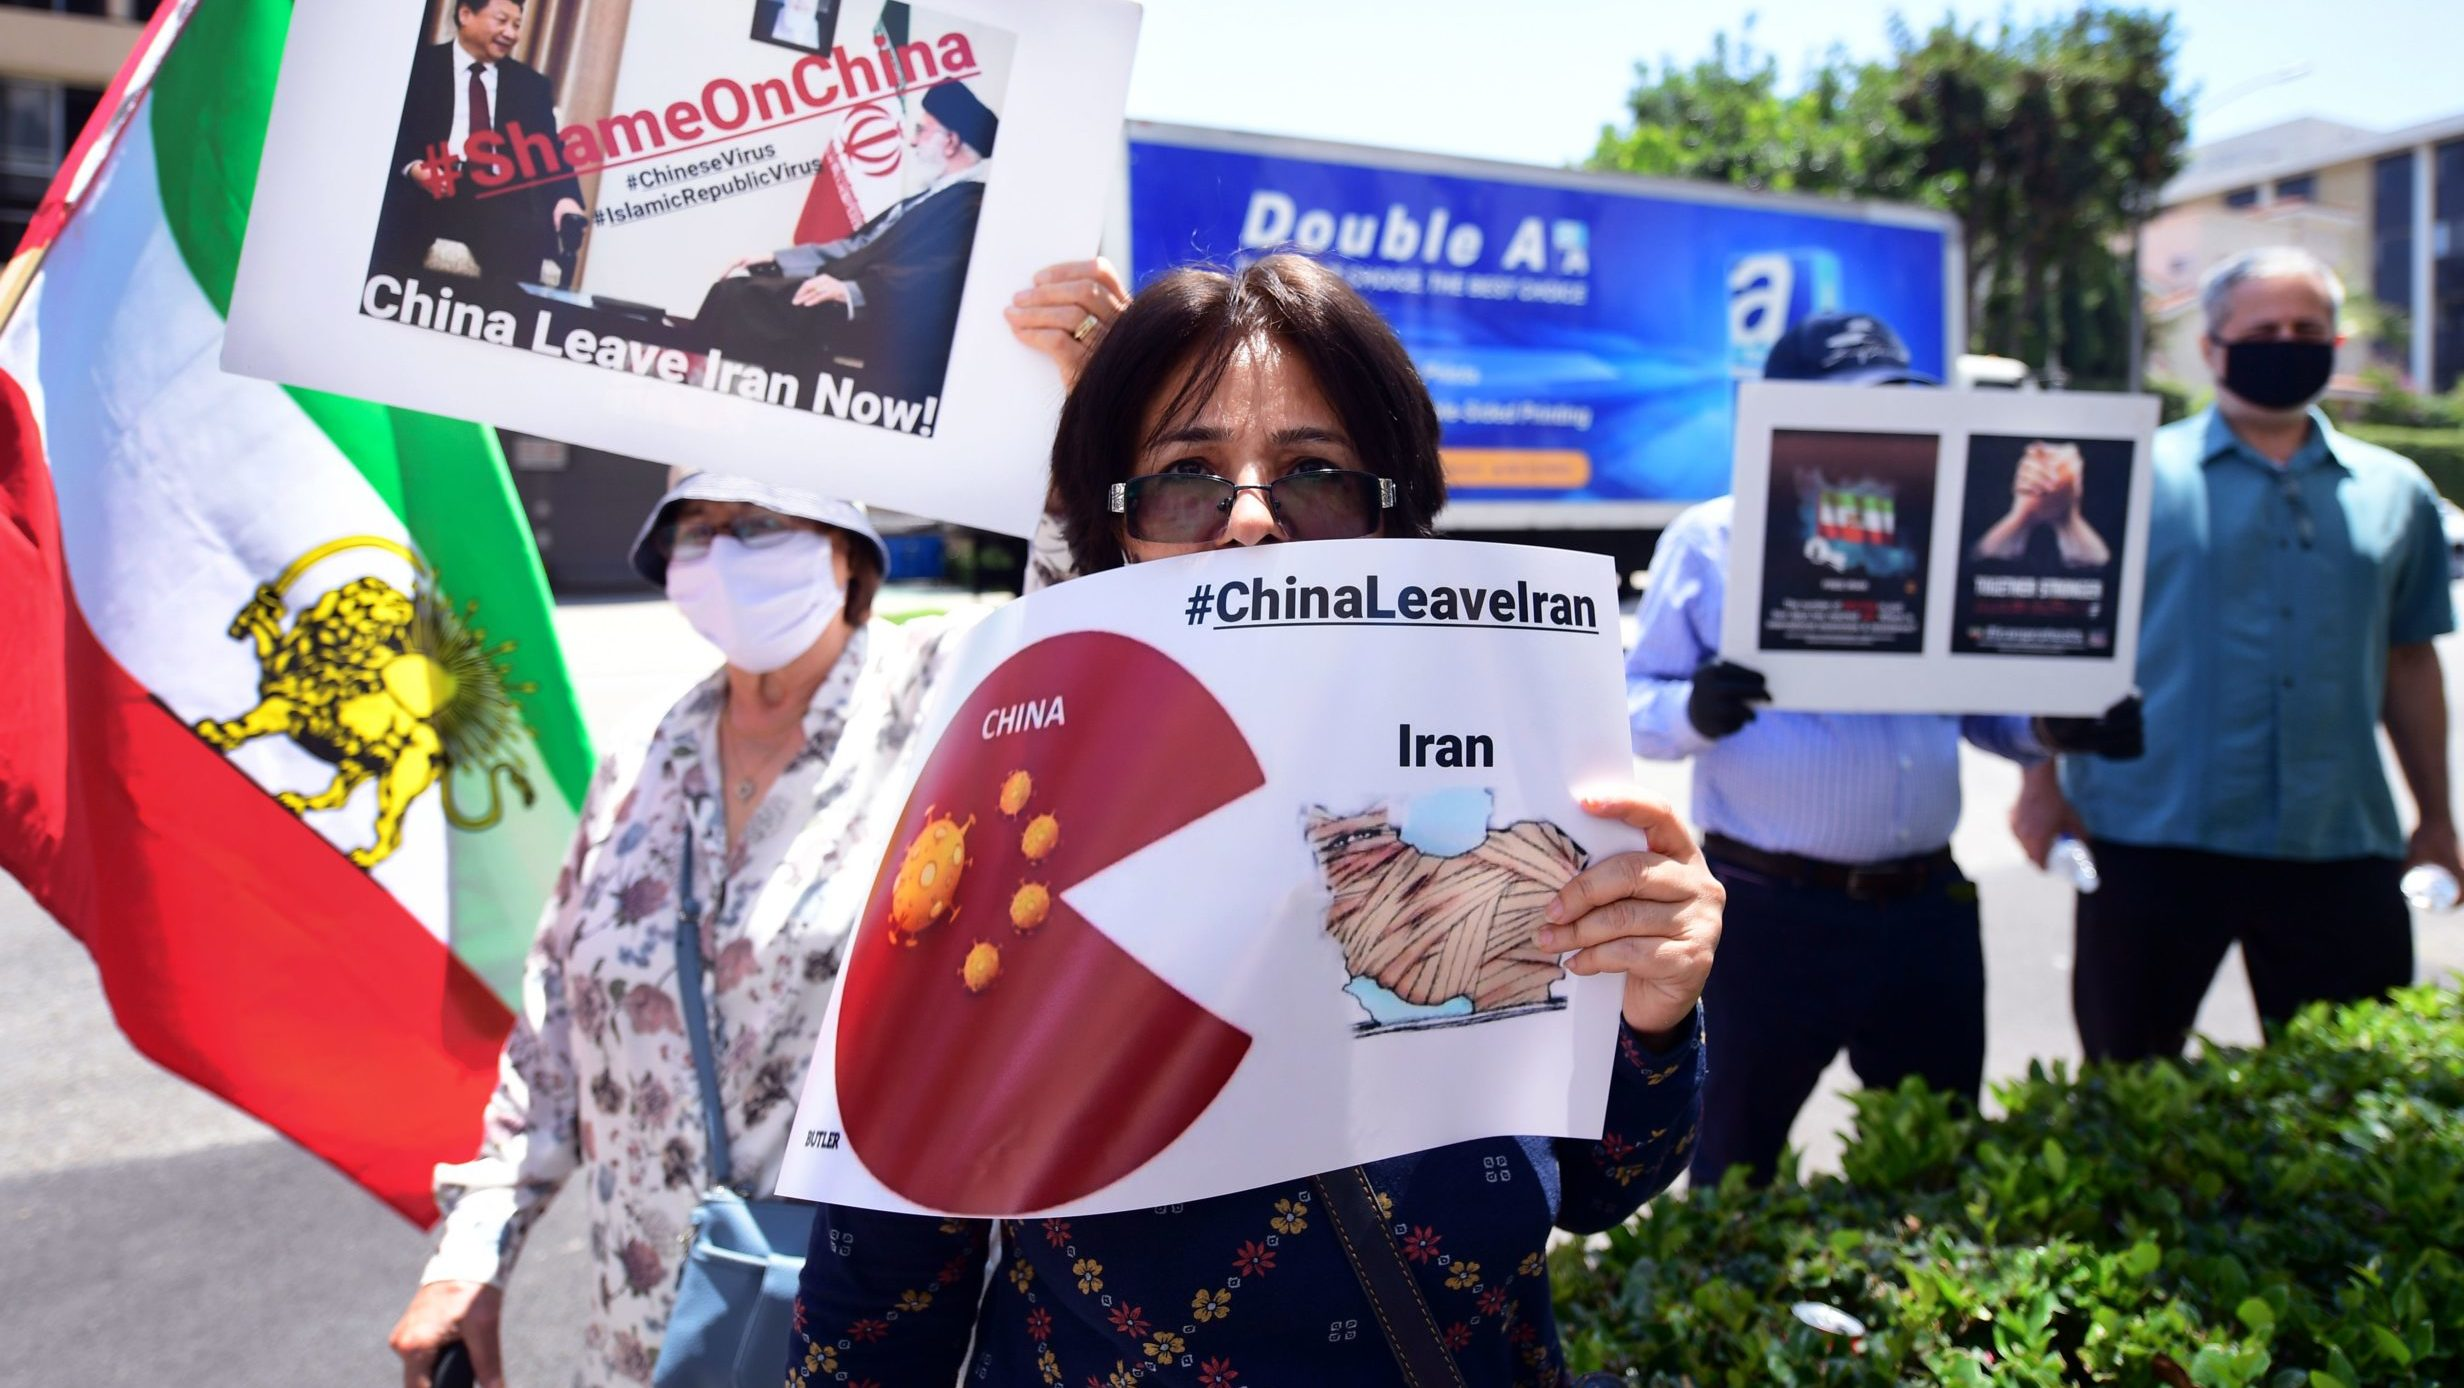 Questions Arise over China's Agreement with Iran